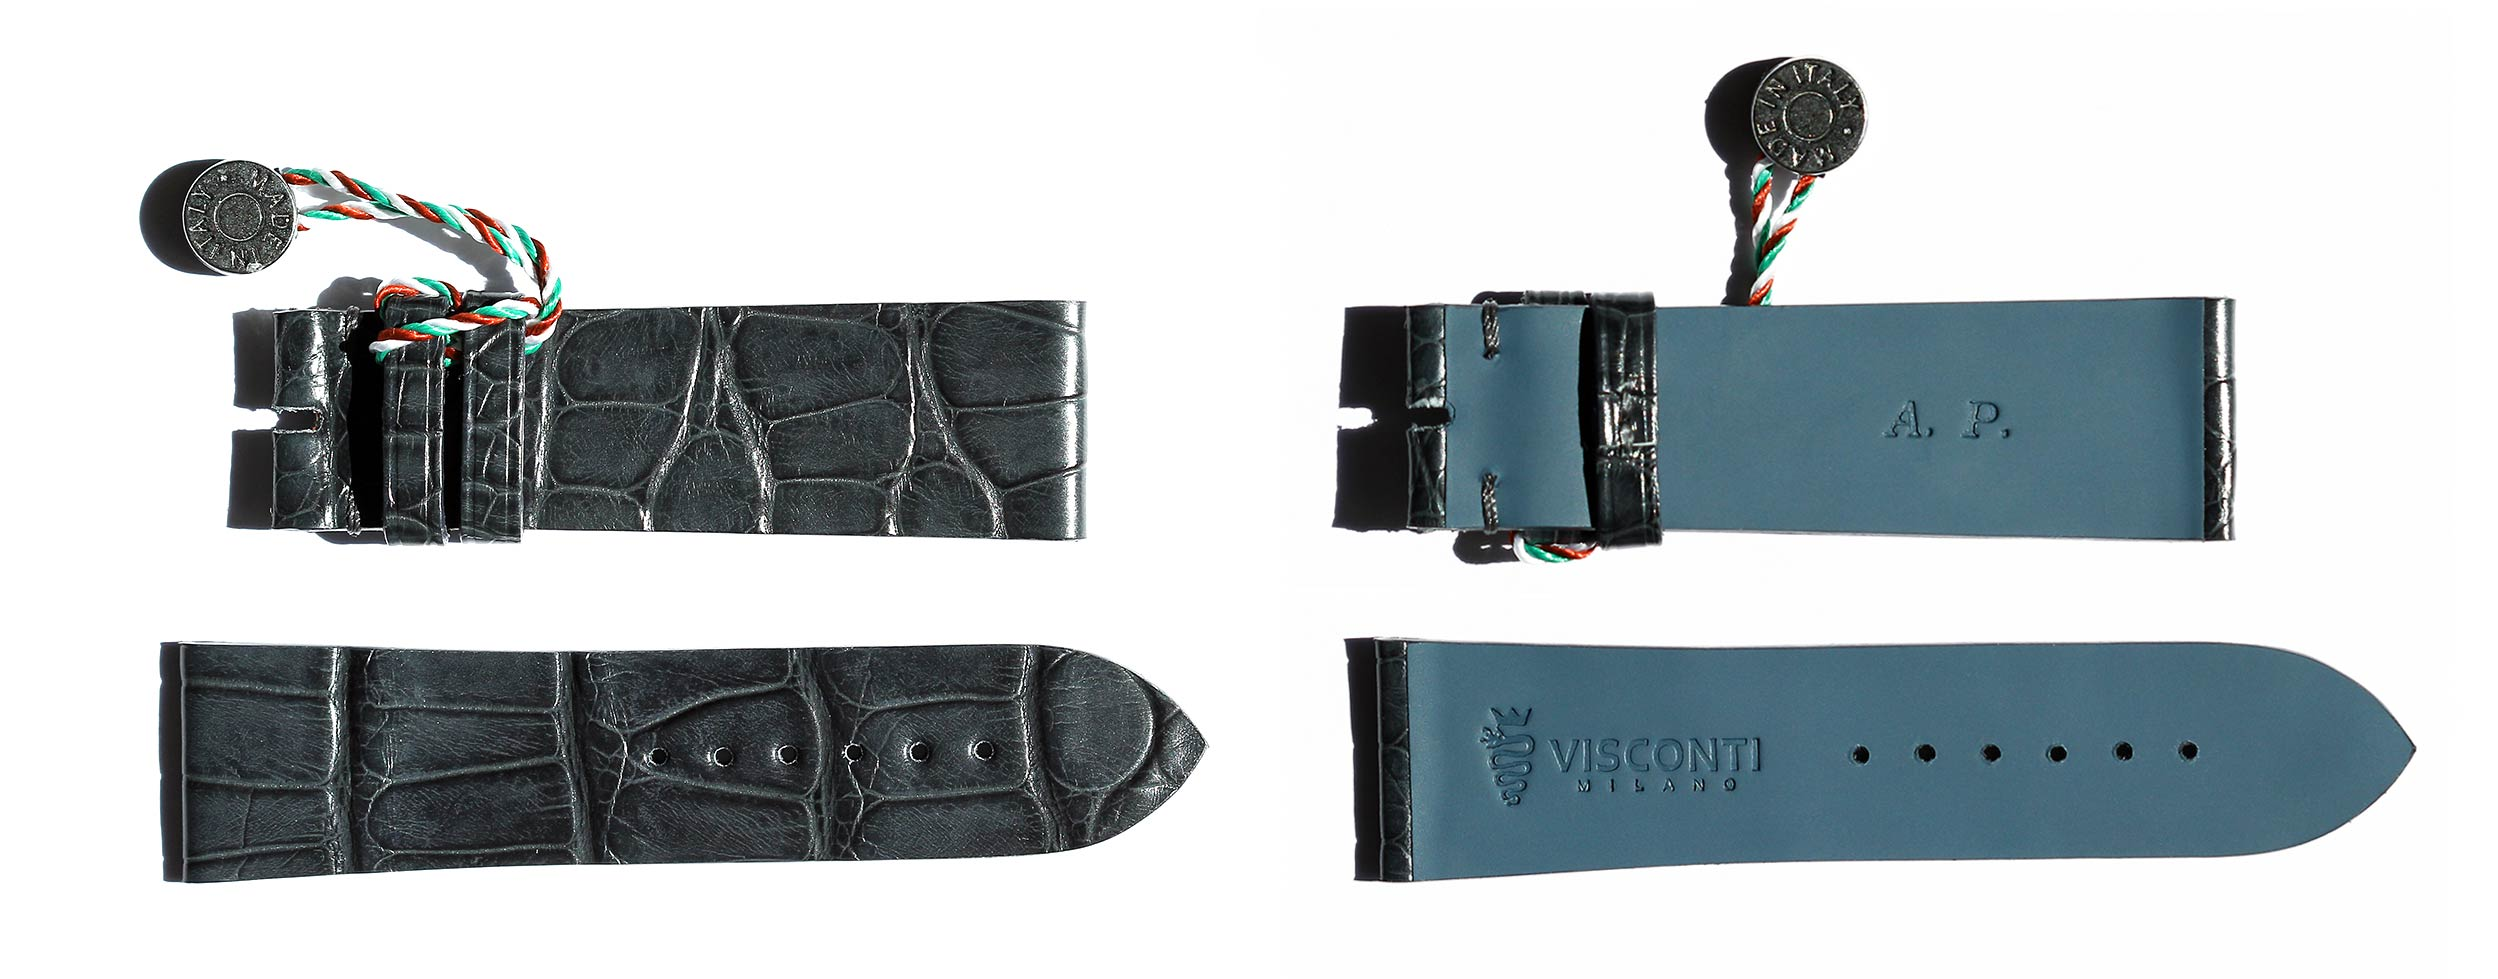 Bespoke matte Grey Alligator leather watch strap for Montblanc Worldtimer with personalization